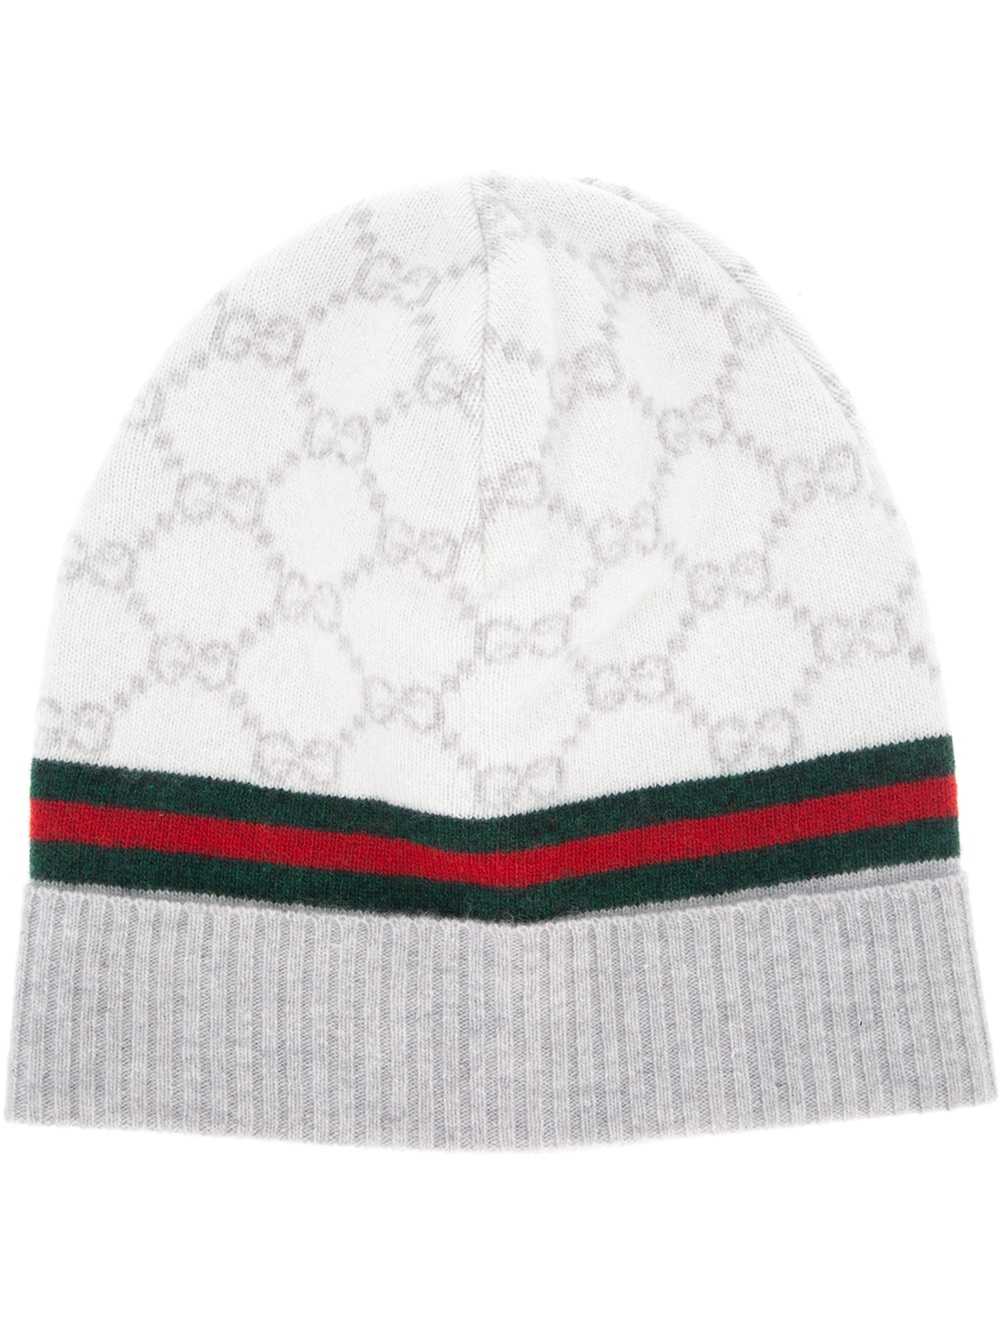 Lyst - Gucci Monogram Beanie Hat in Natural 56f1a24bd6a